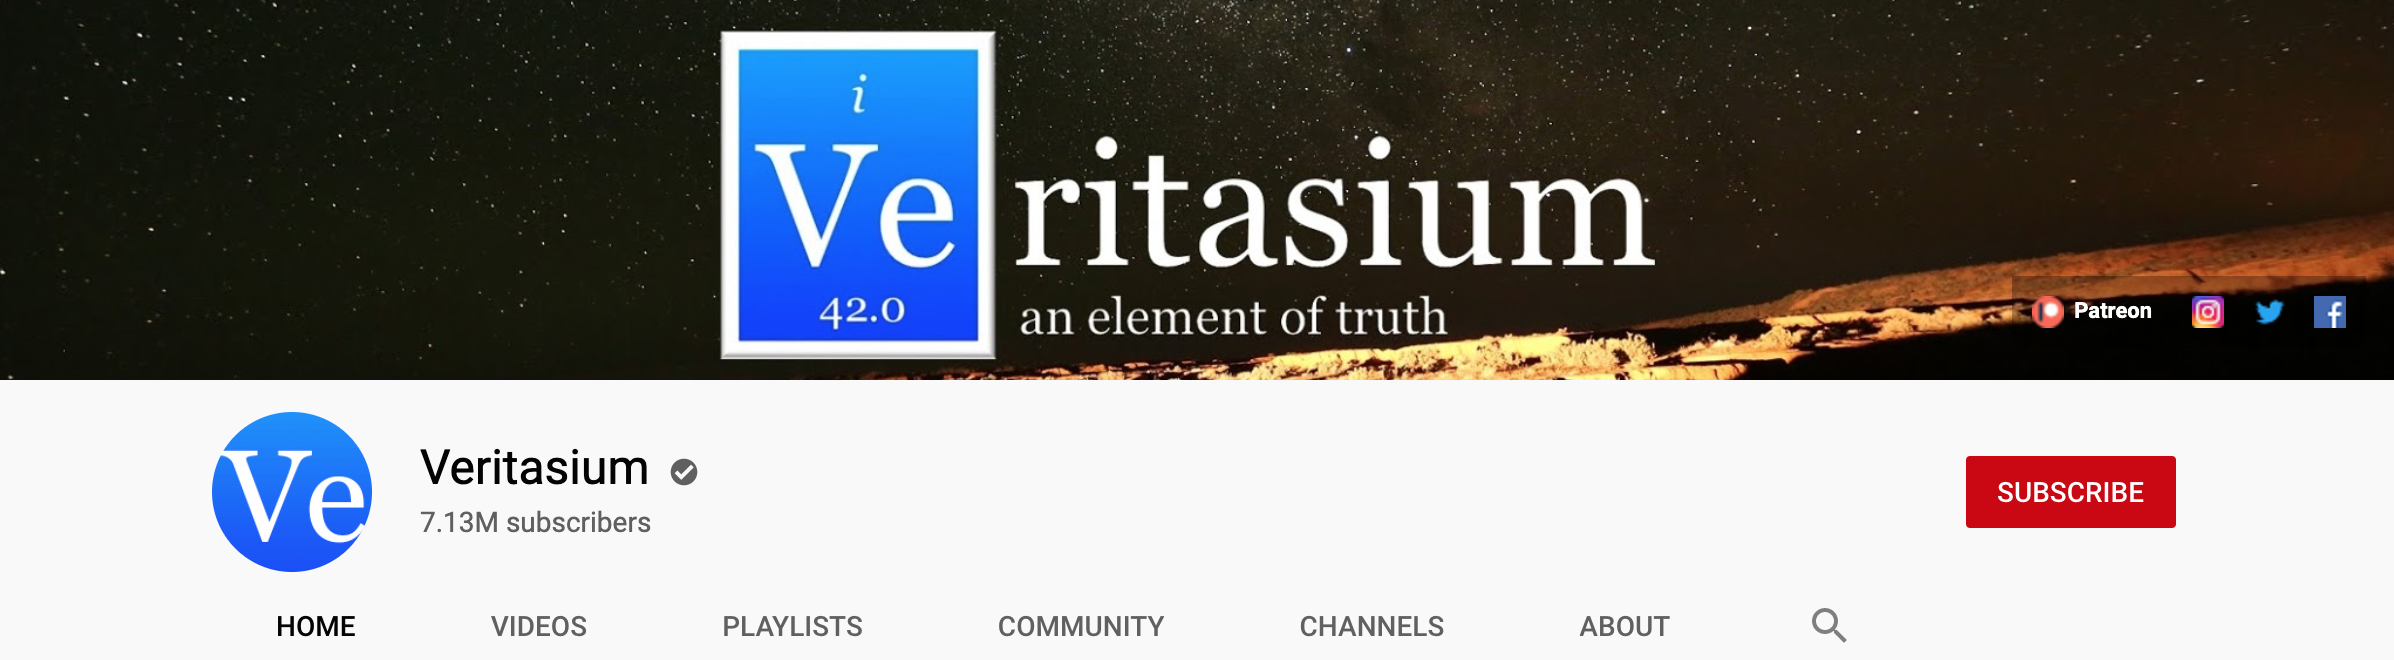 veritasium youtube banner